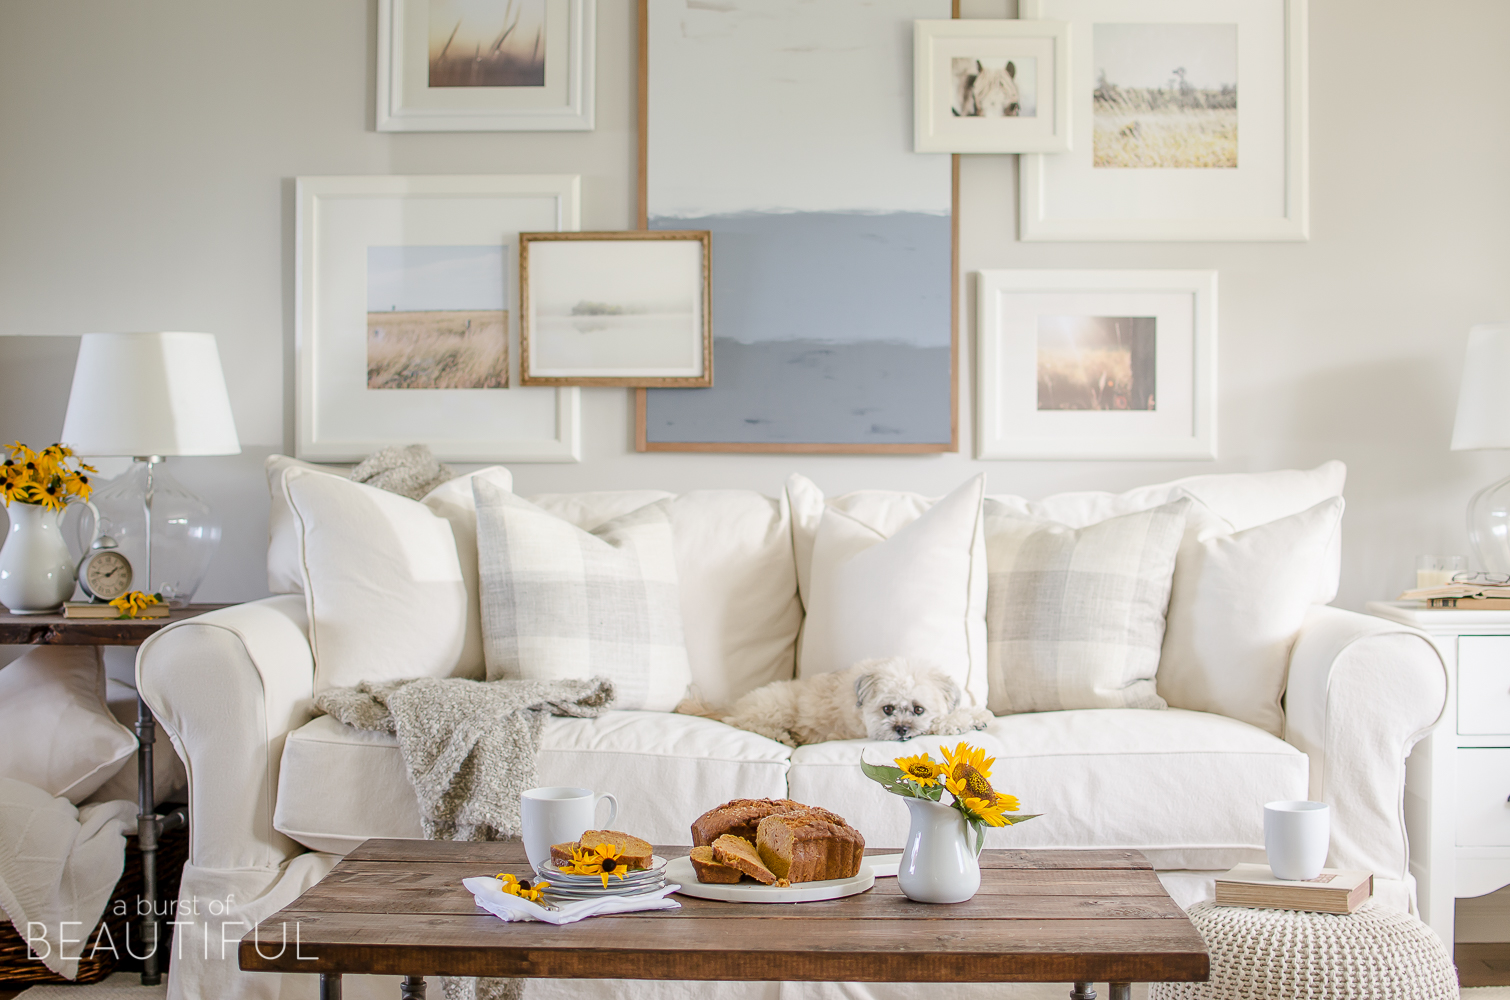 A simple farmhouse decorated with subtle touches of fall